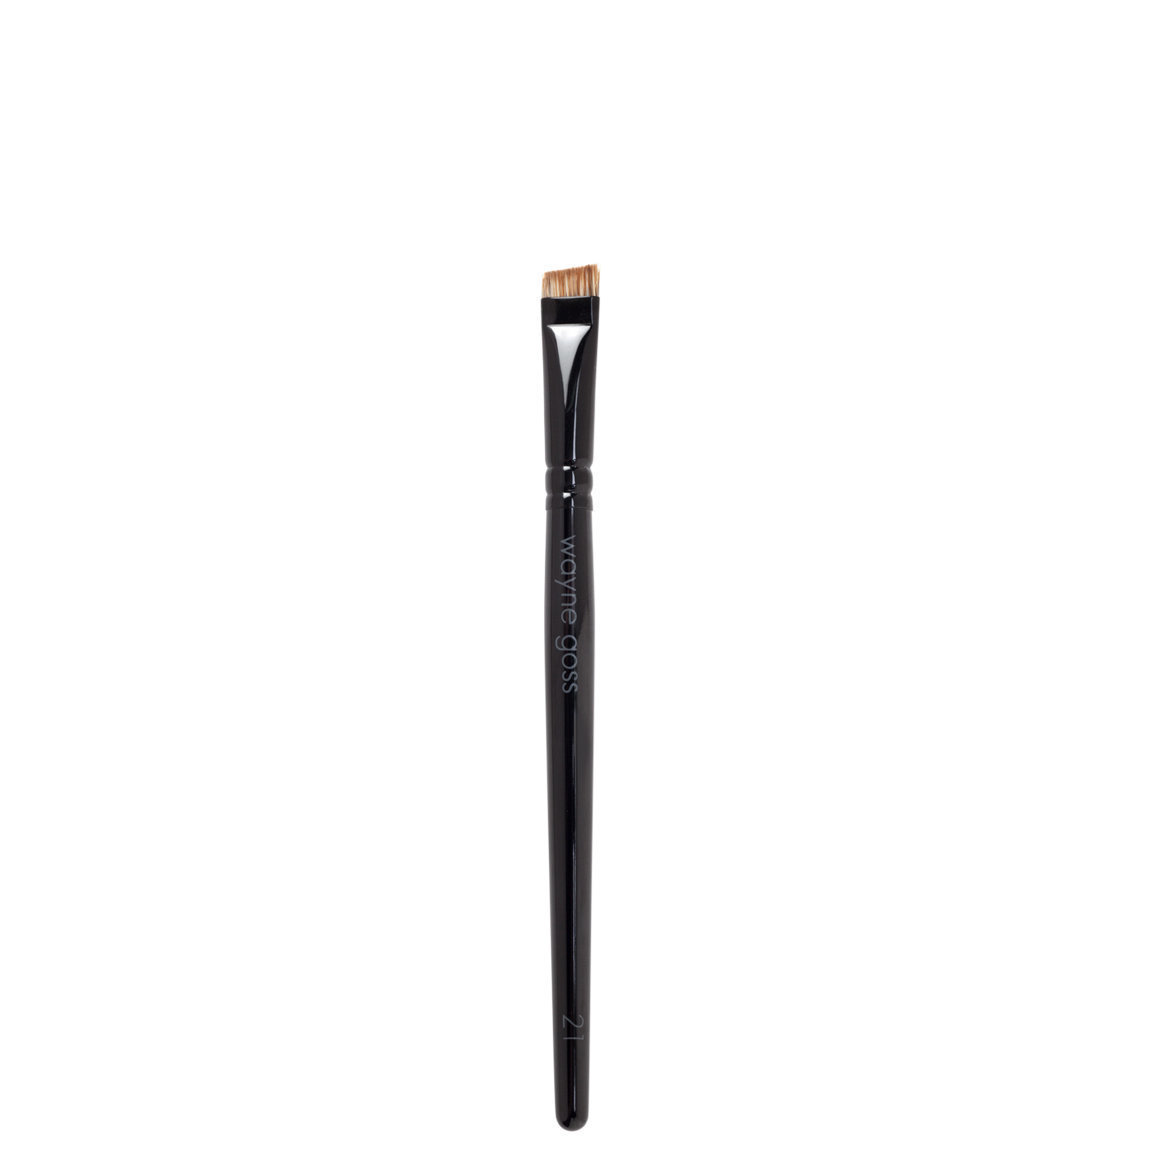 Wayne Goss Brush 21 Eyebrow Brush product swatch.